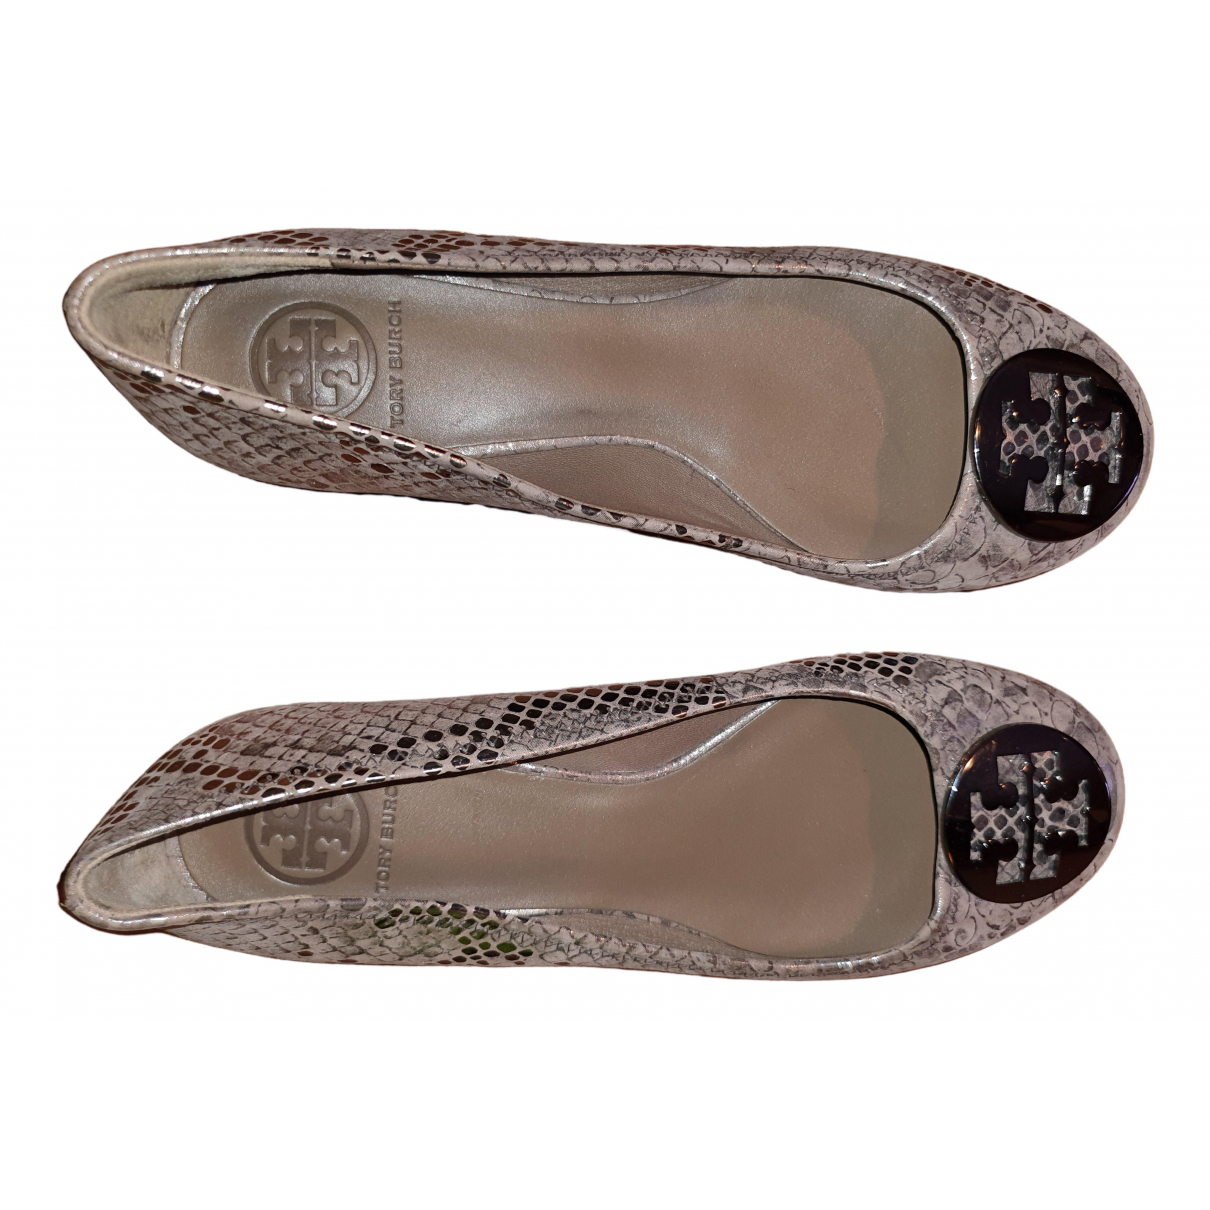 Tory Burch \N Brown Leather Ballet flats for Women 38 EU